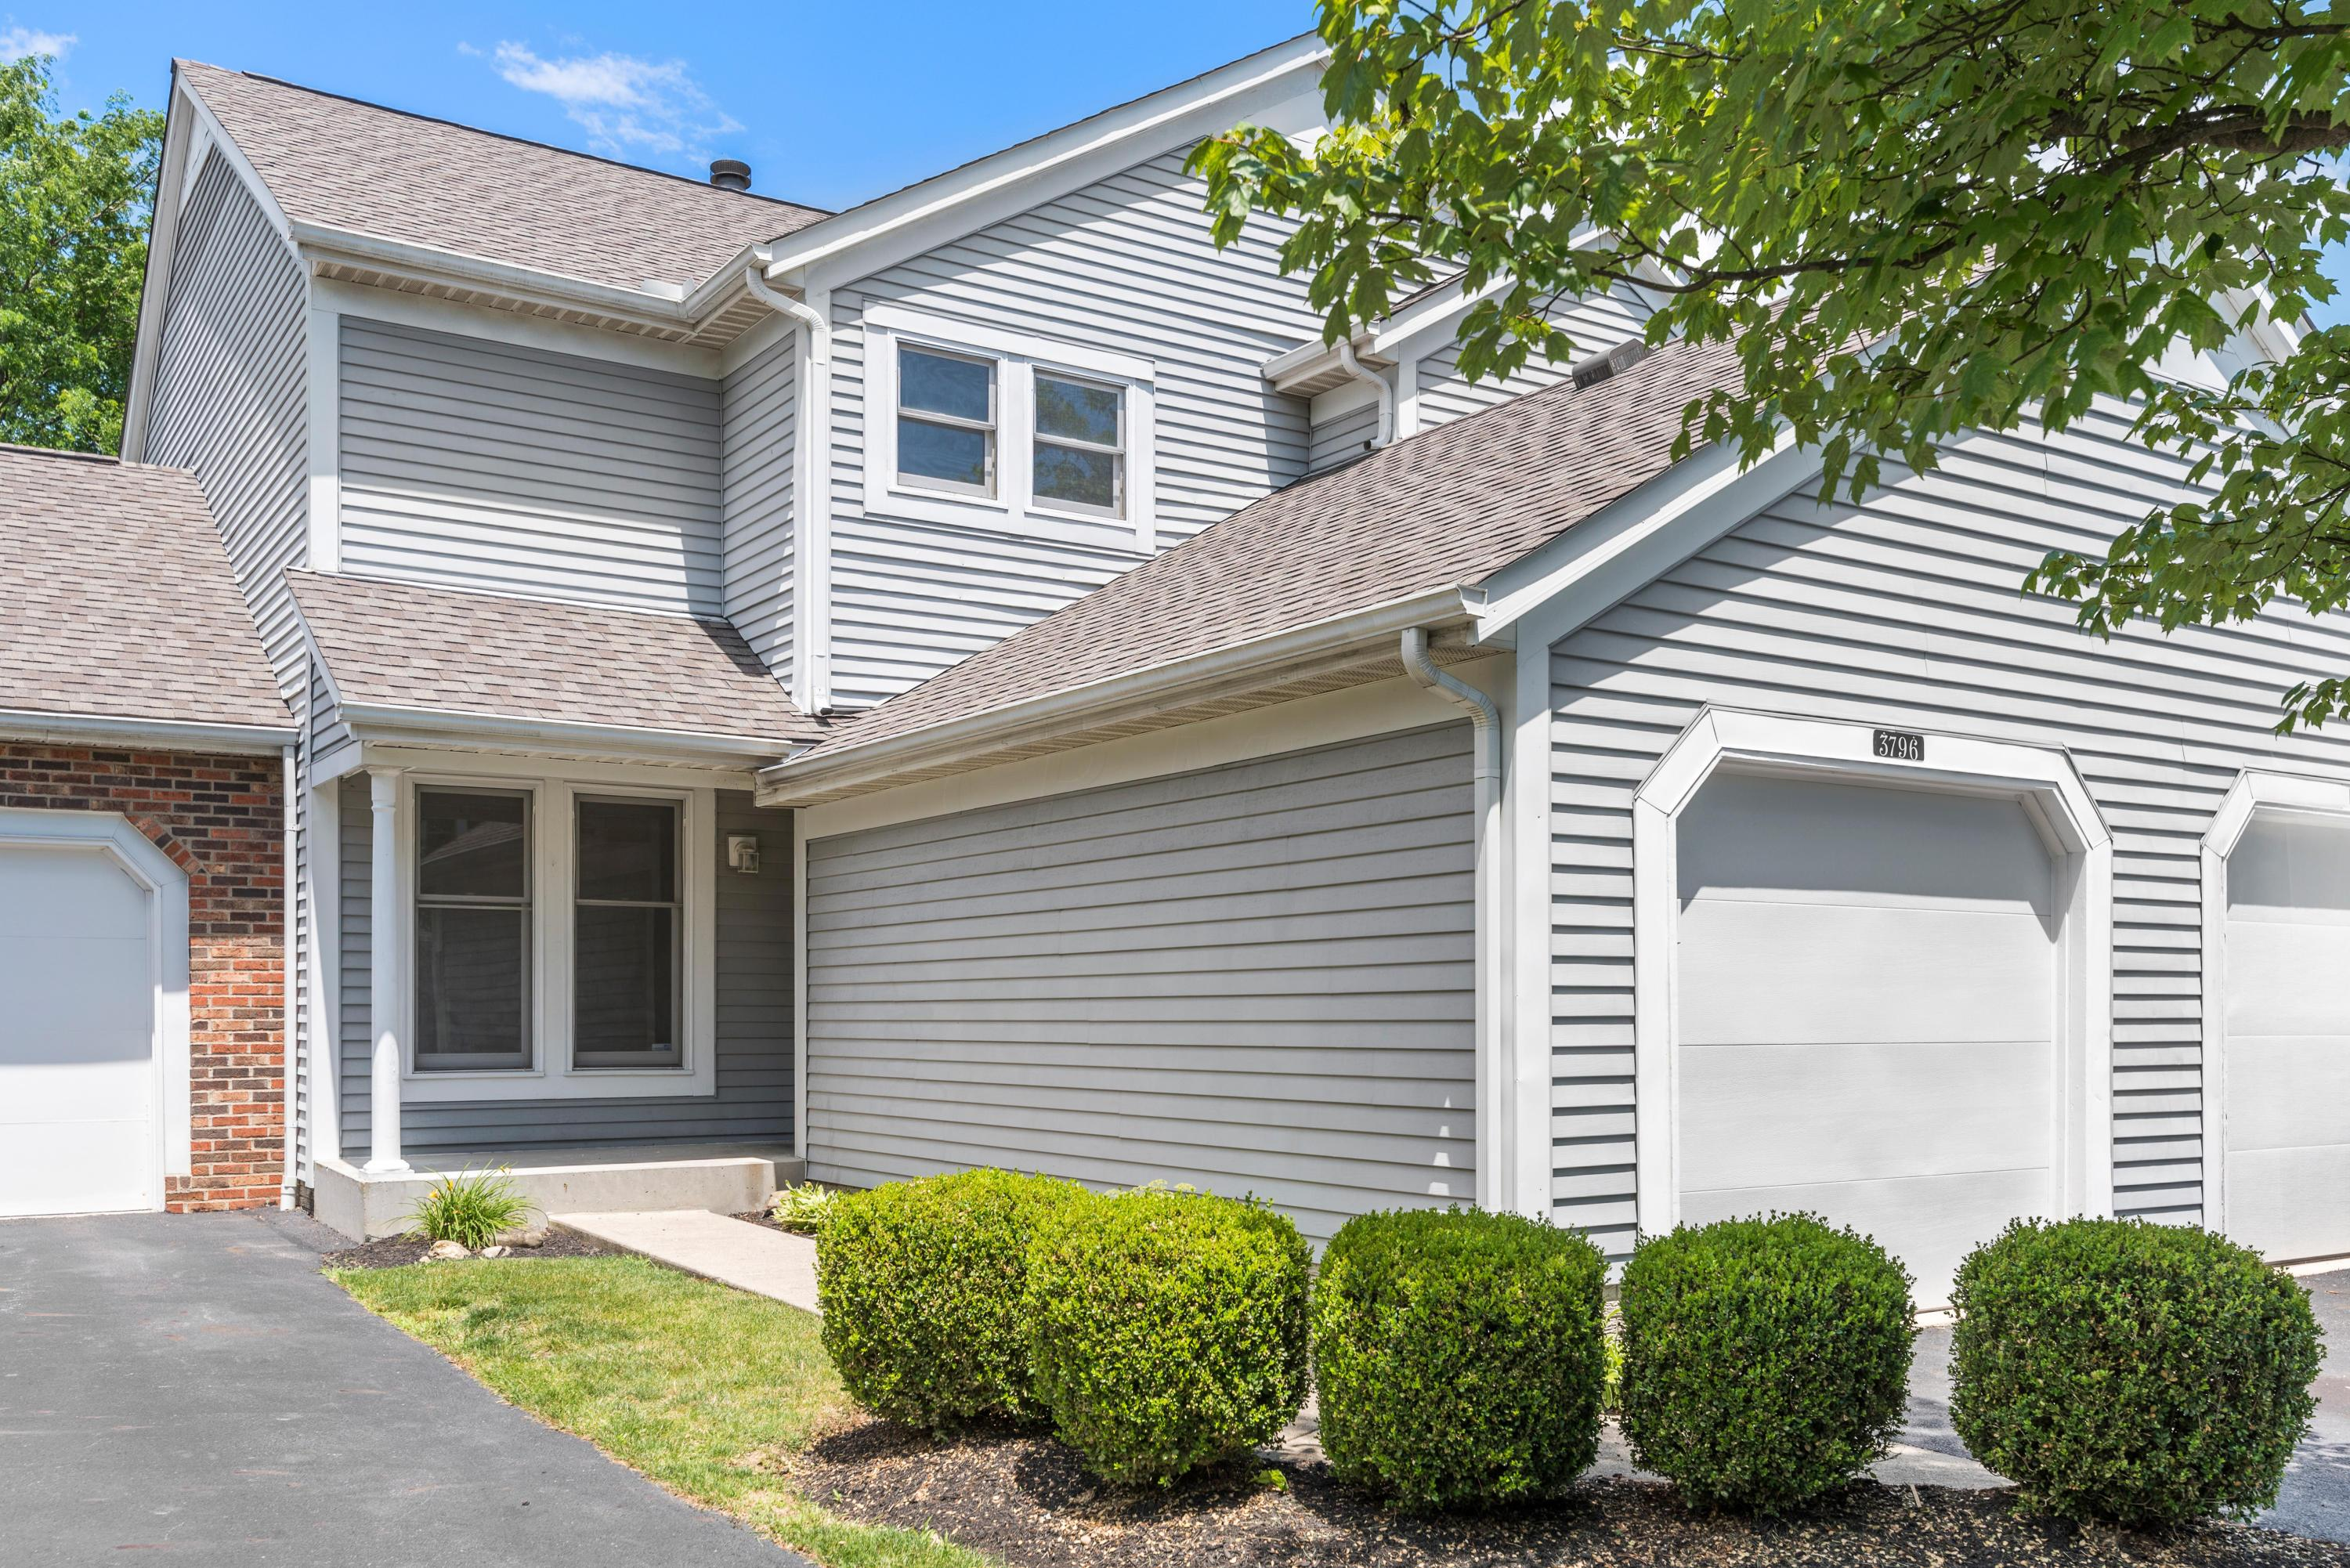 3796 Baybridge Lane, Dublin, Ohio 43016, 2 Bedrooms Bedrooms, ,2 BathroomsBathrooms,Residential,For Sale,Baybridge,220020710